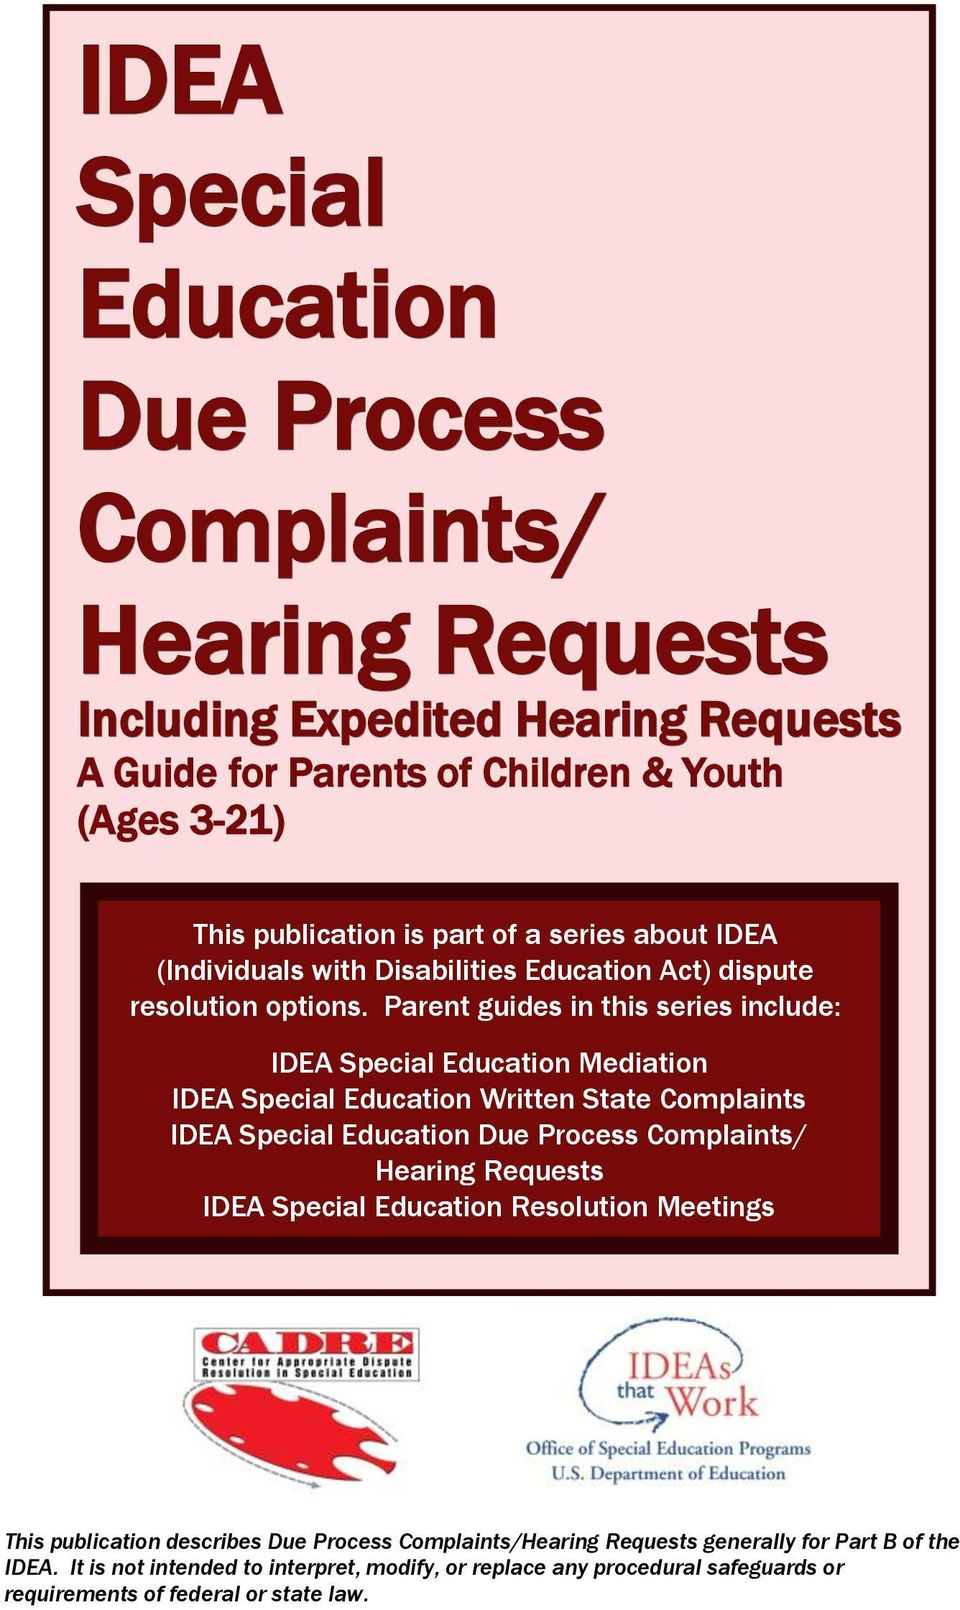 Procedural Safeguards In Special Education Montana Office Of >> Idea Special Education Due Process Complaints Hearing Requests